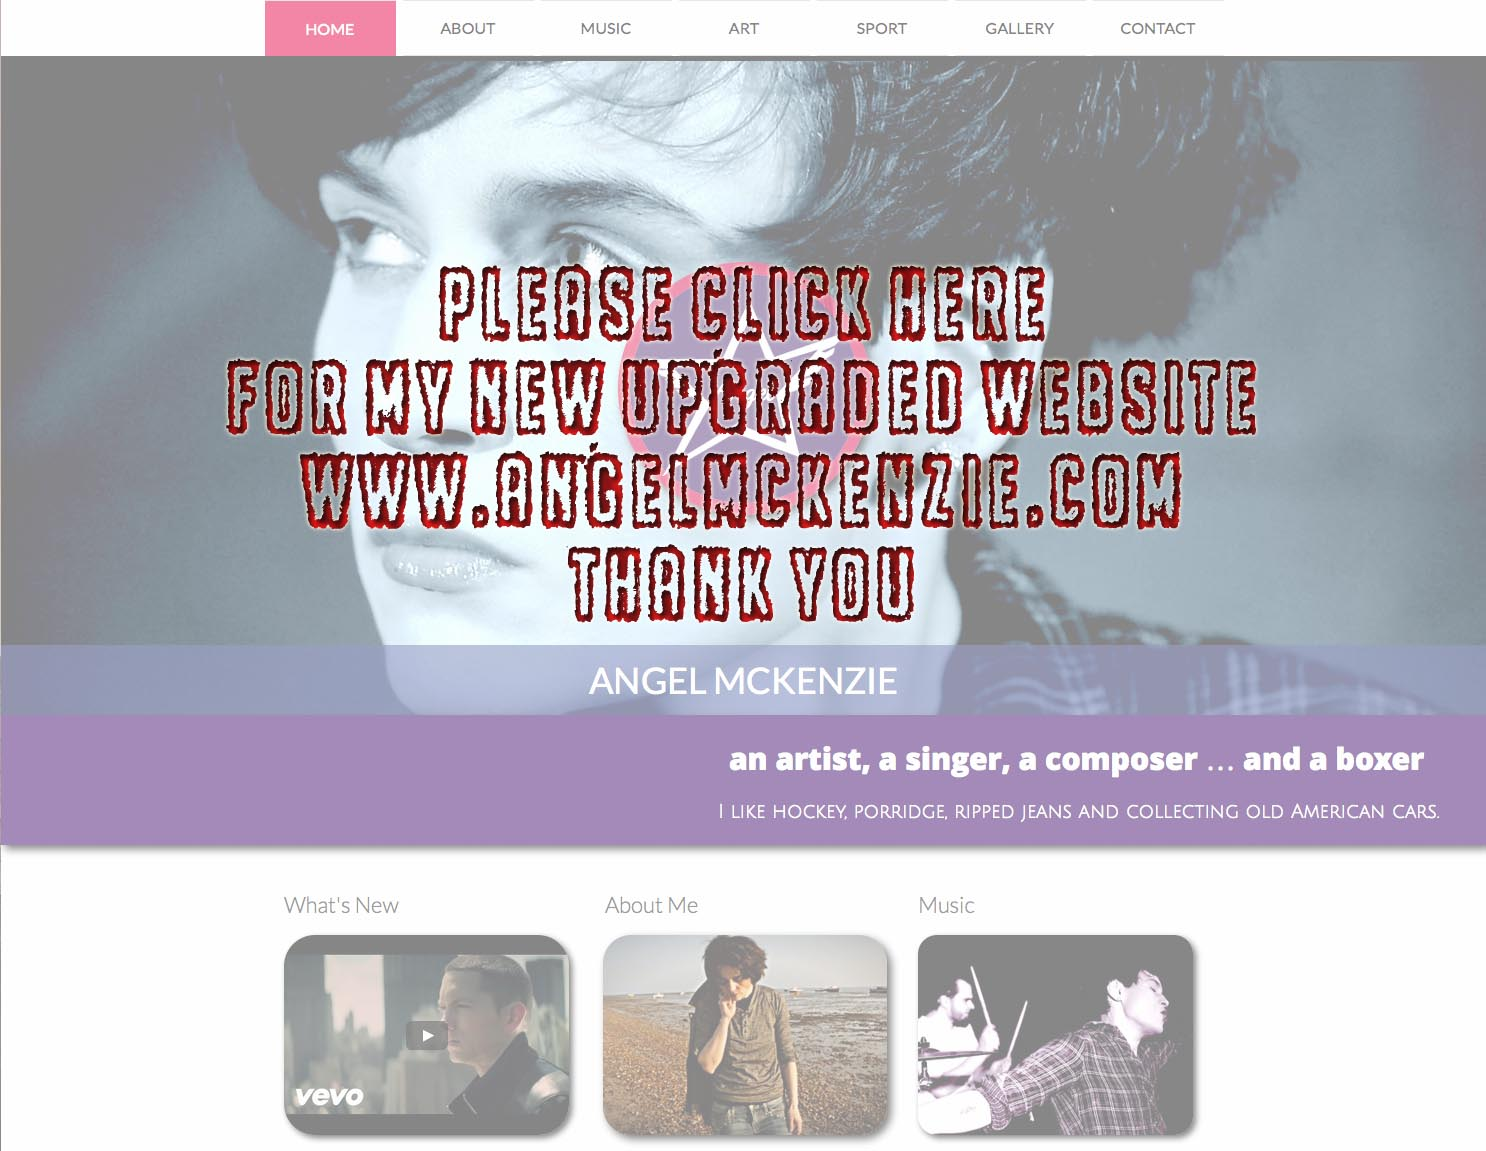 please click here for my new upgraded website www.angelmckenzie.comwebsite